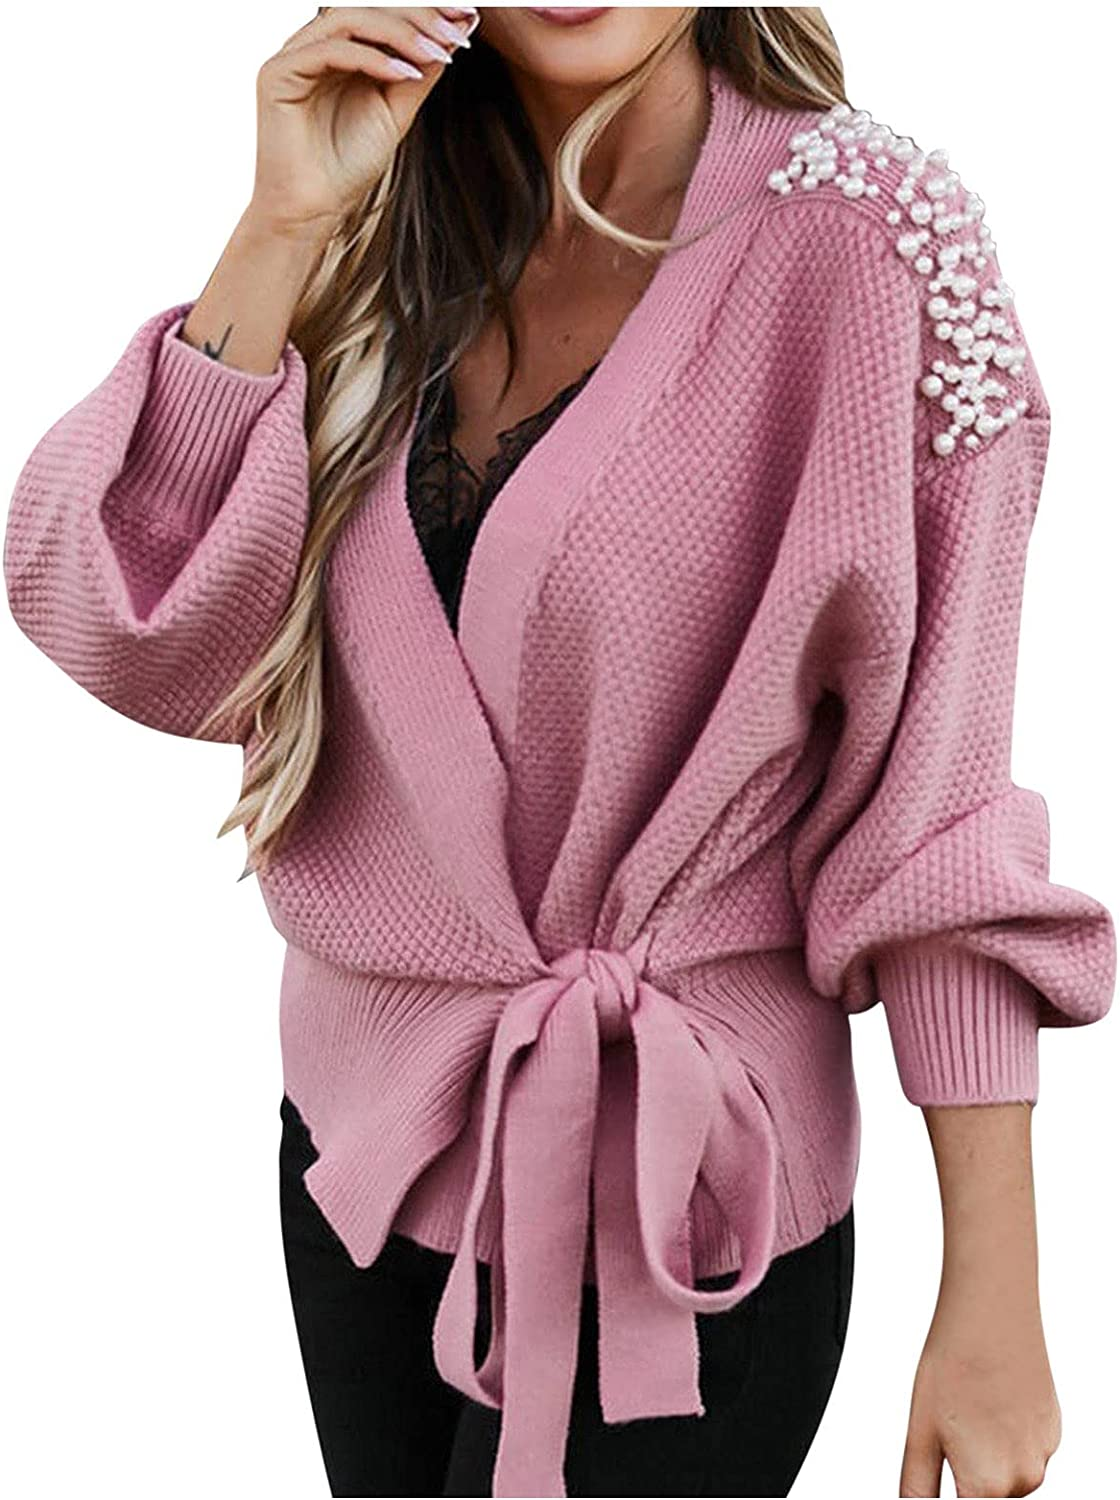 Long Lantern Sleeve V-Neck Bowknot Pearl Pure Color Waist Knit Cardigan Sweater for Women by Pocciol